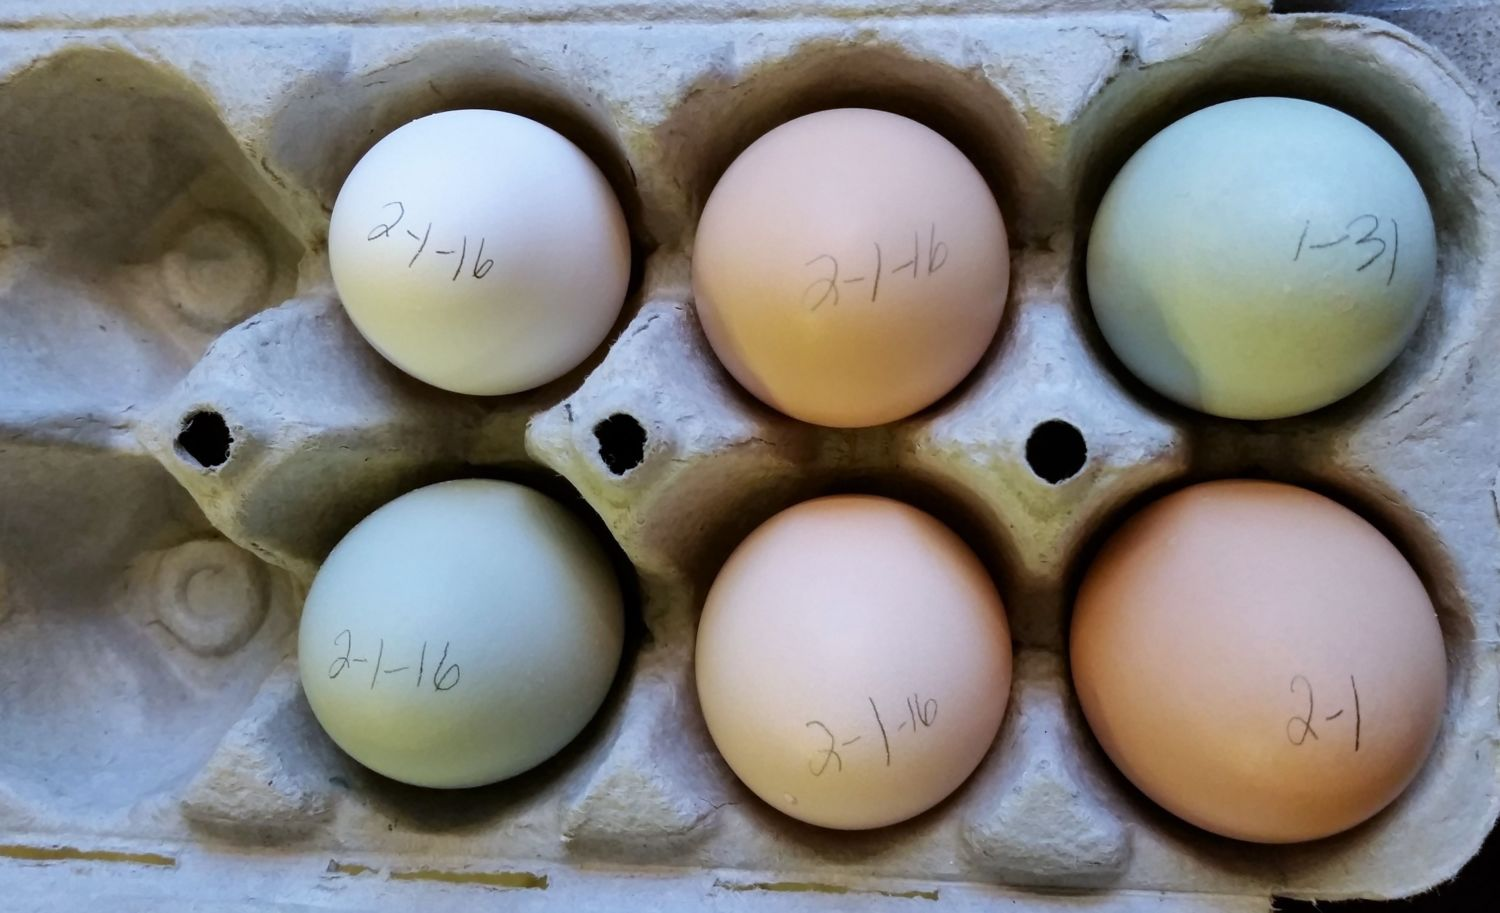 EE, Polish, Sussex, Orpington, and Australorp eggs